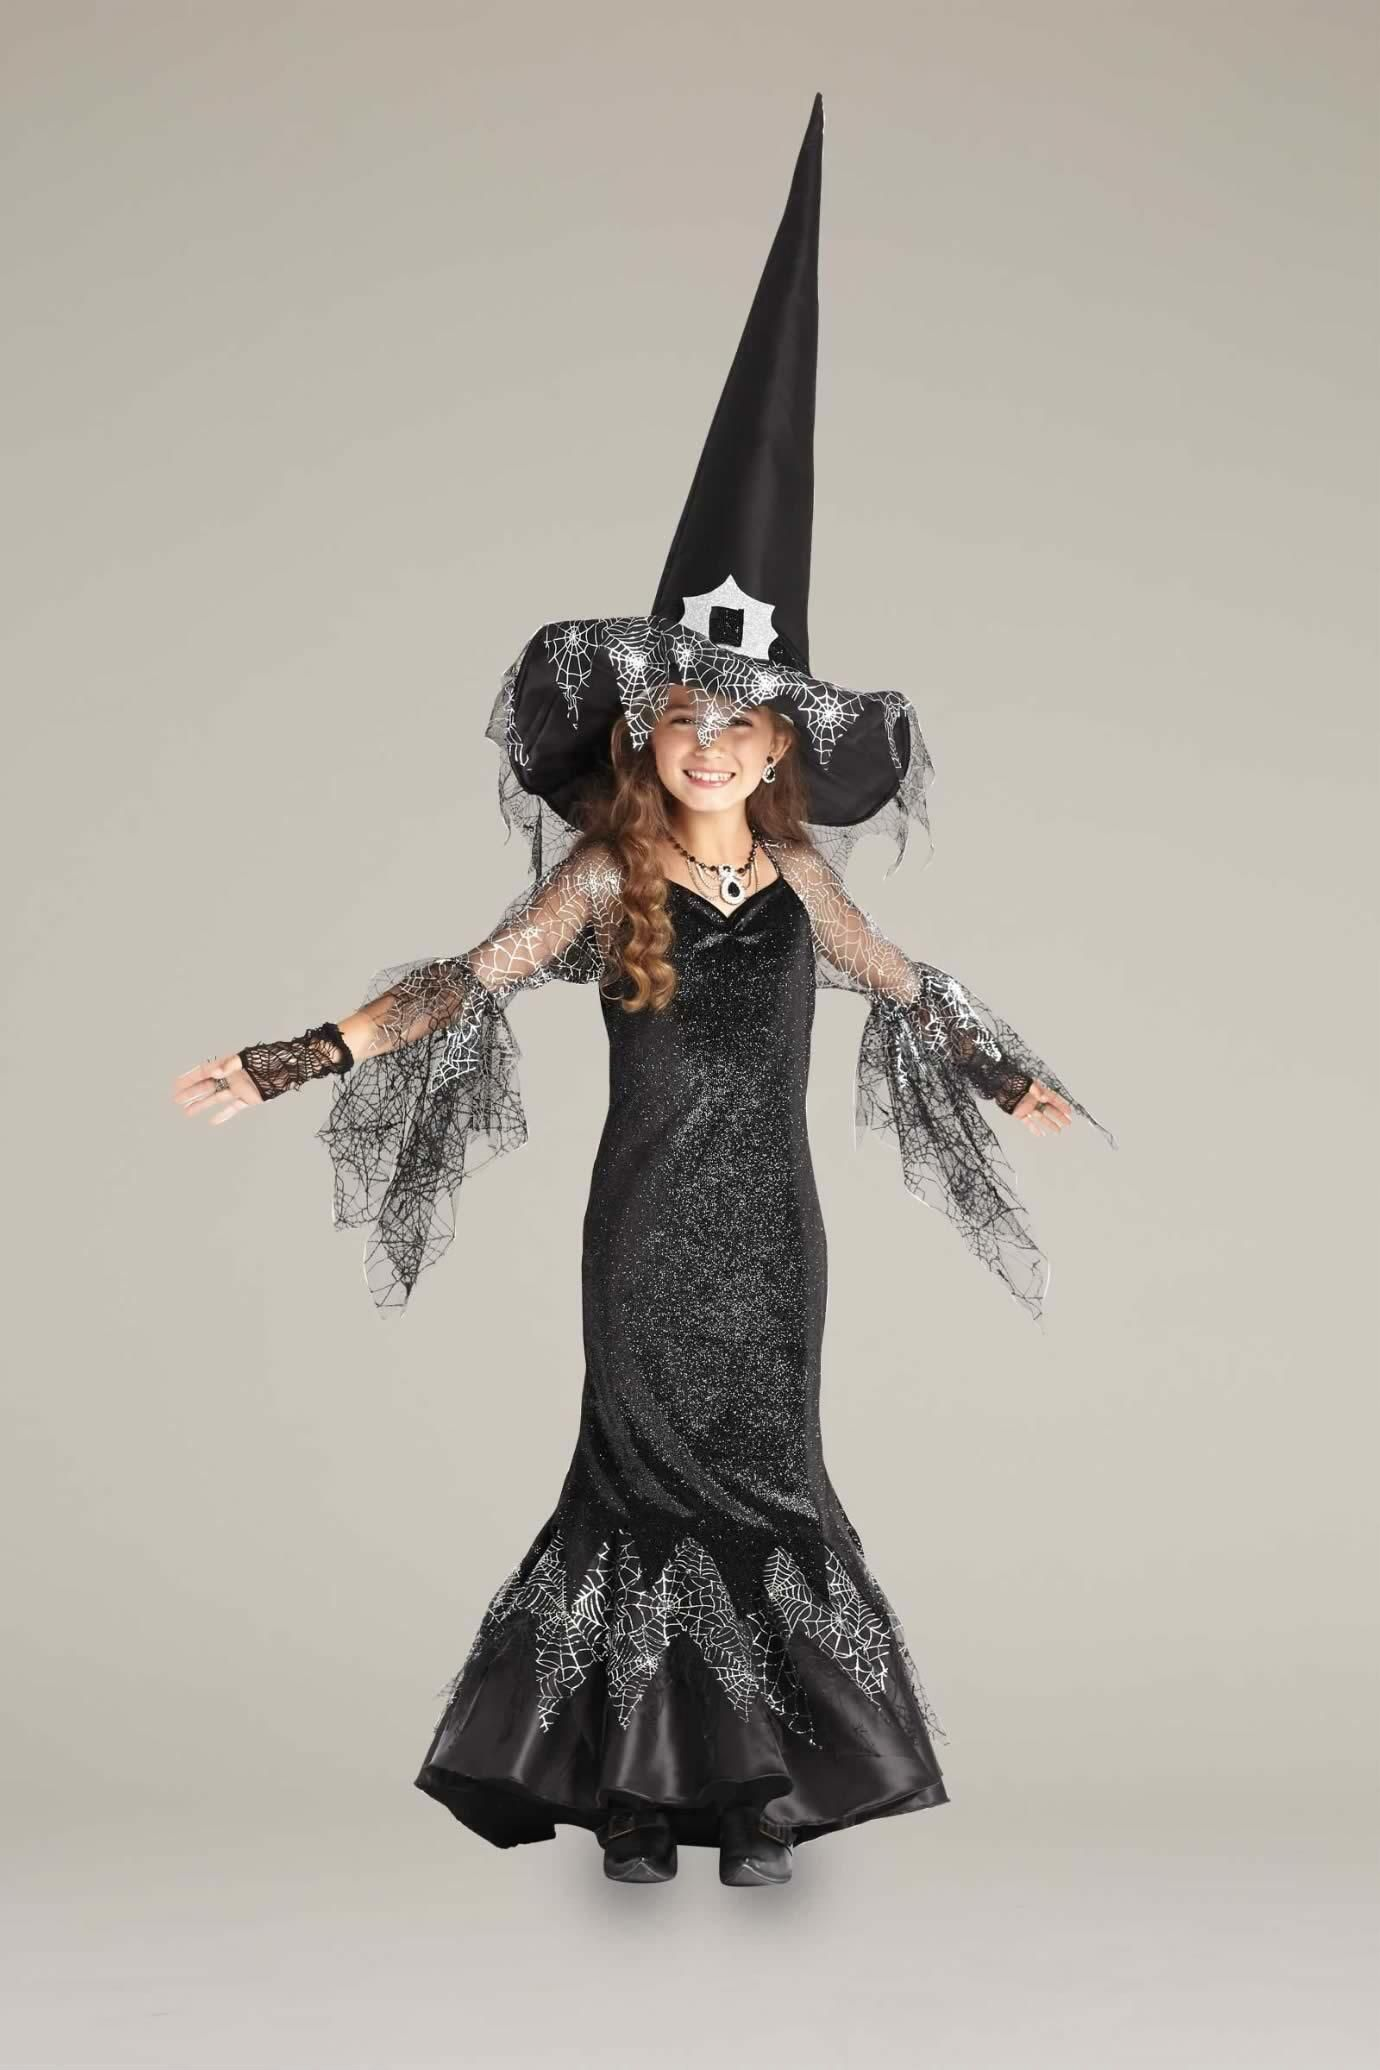 Spiderweb Witch Costume Girls Costumes Witches Chasing Fireflies Ballroom Dancer